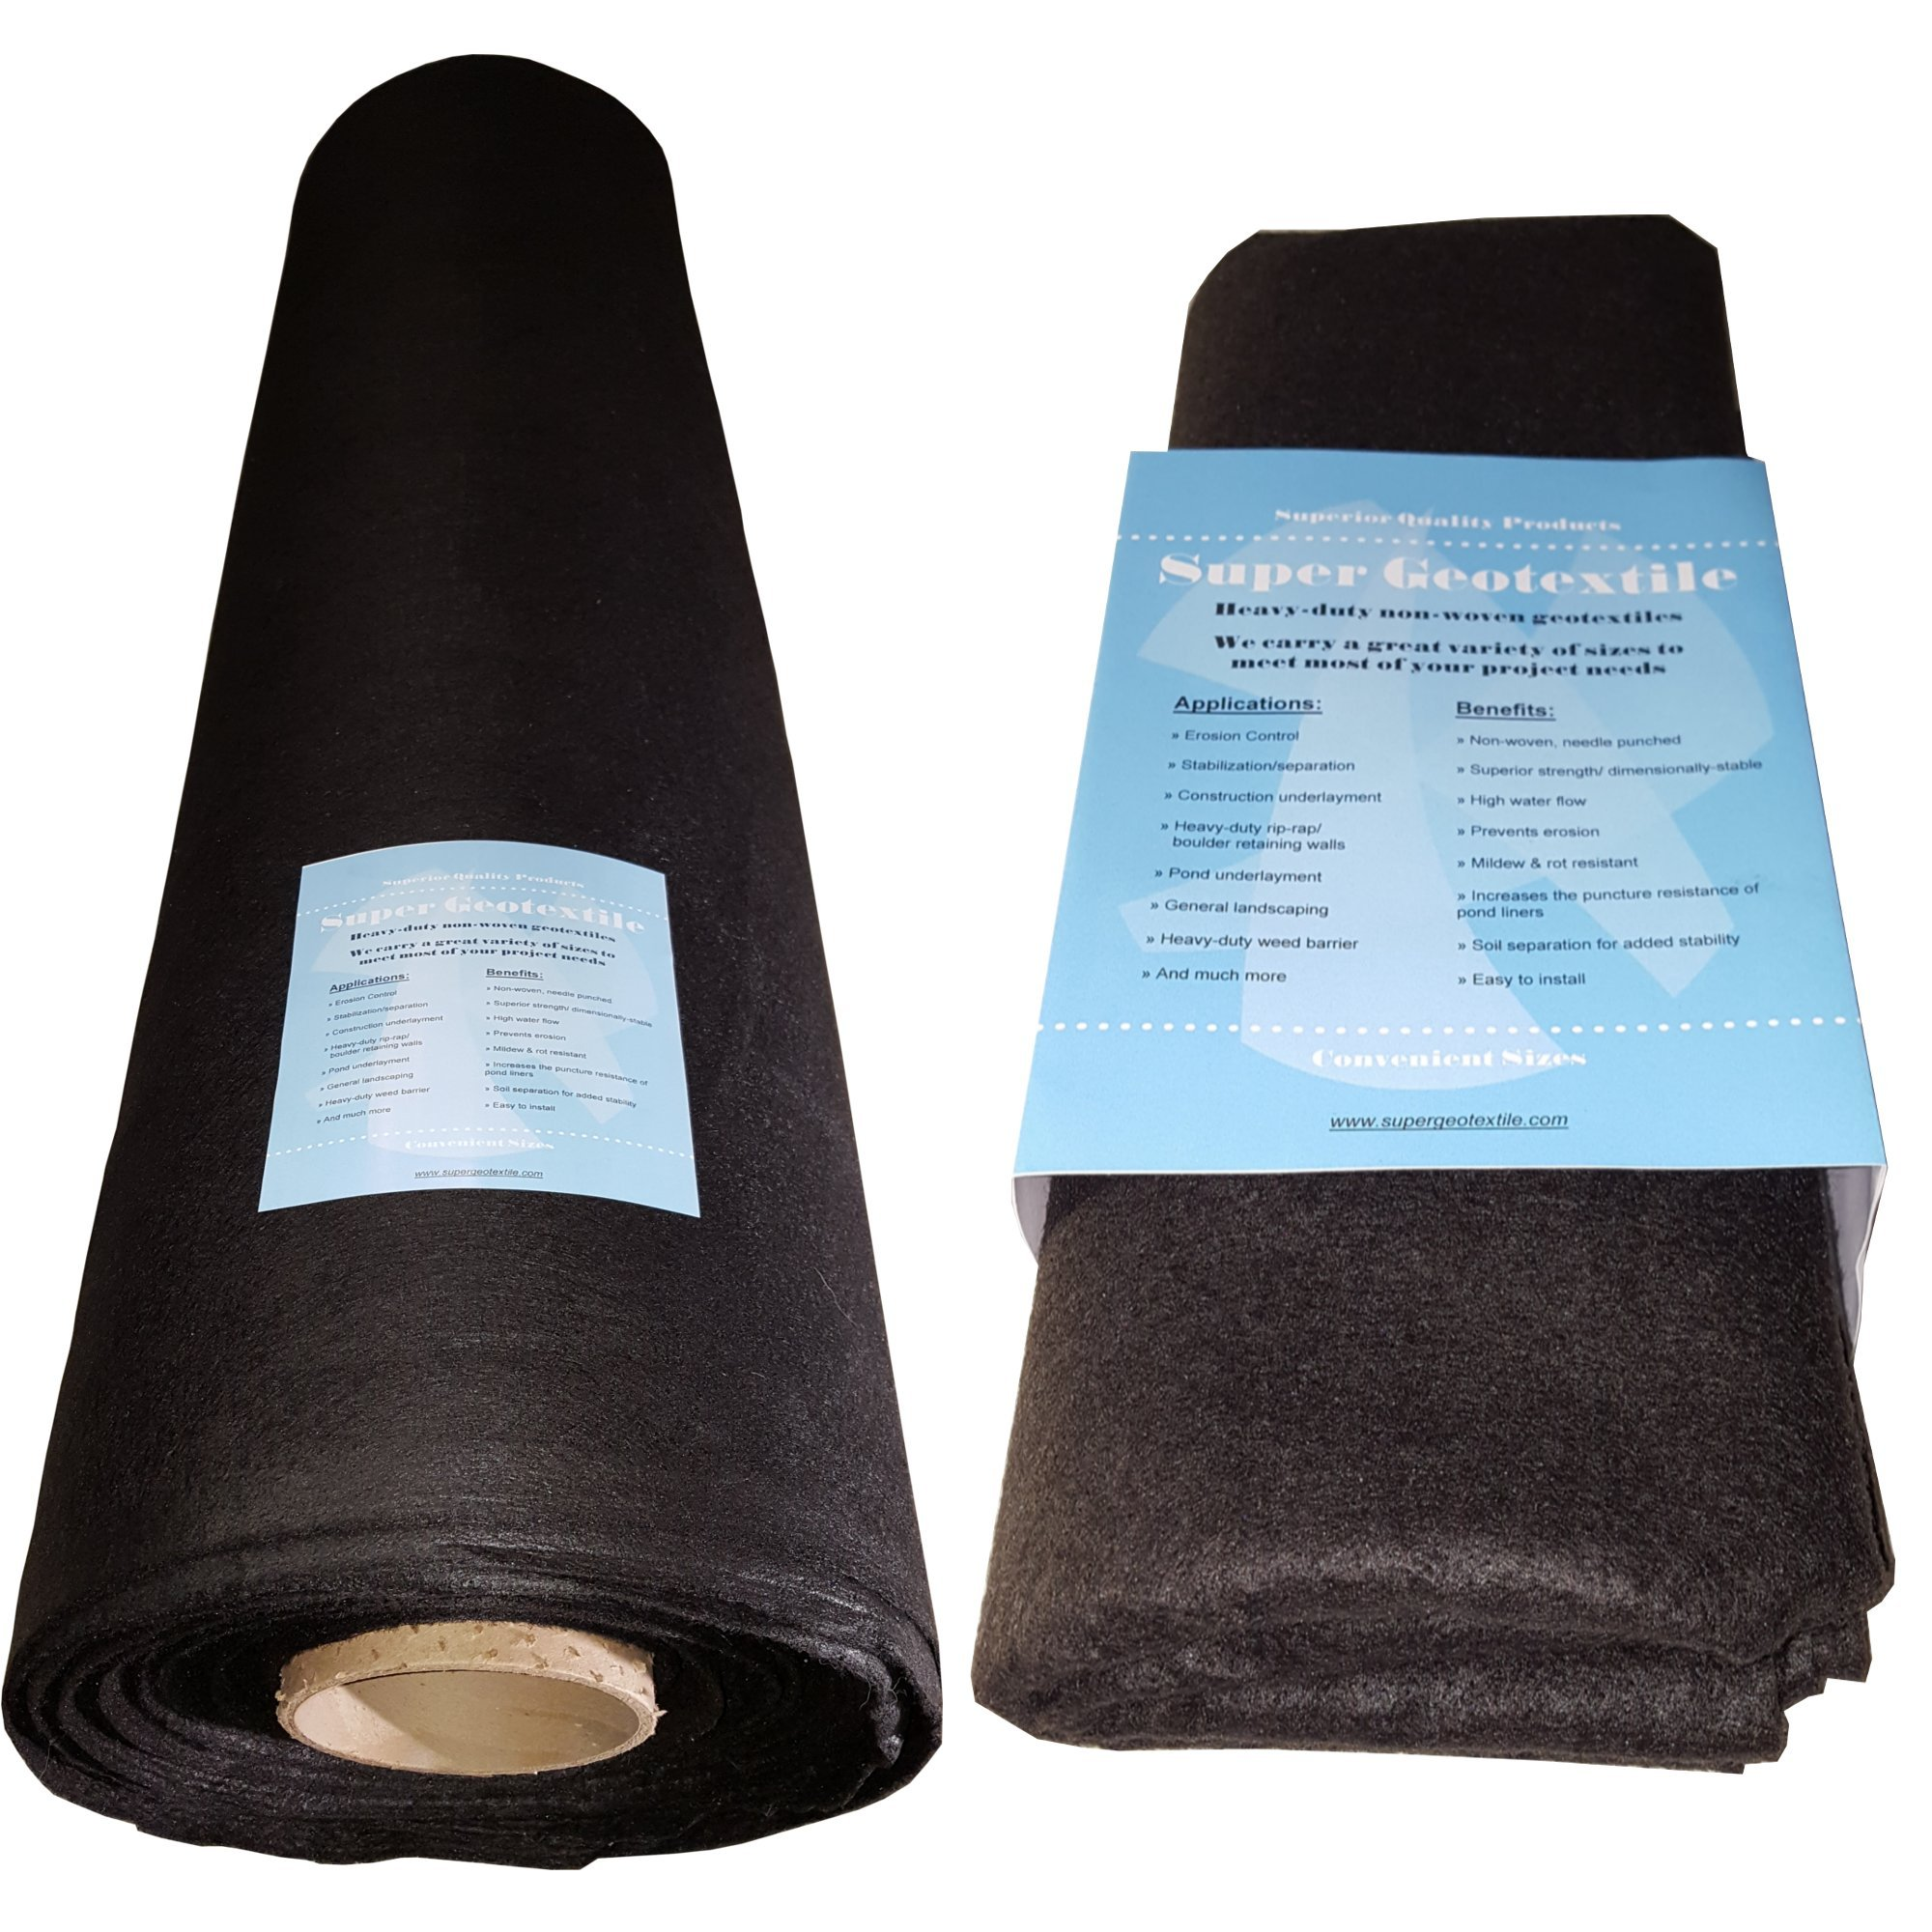 6oz Geotextile for Landscaping, Underlayment, Erosion Control, Construction Projects and more (4X100) by Super Geotextile